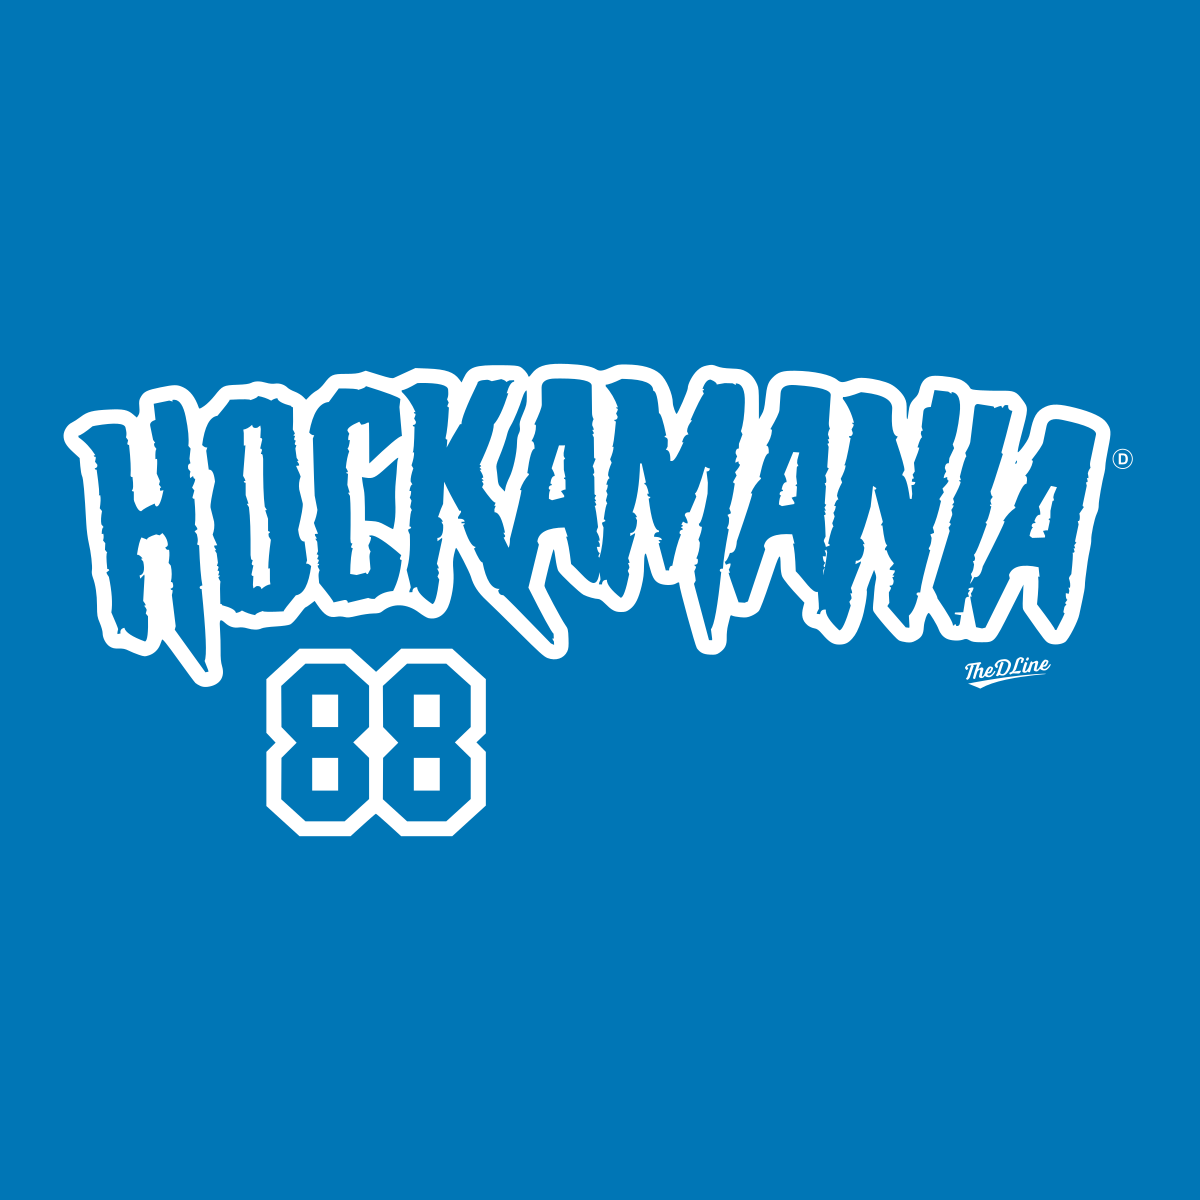 HOCKAMANIA SMALL.png